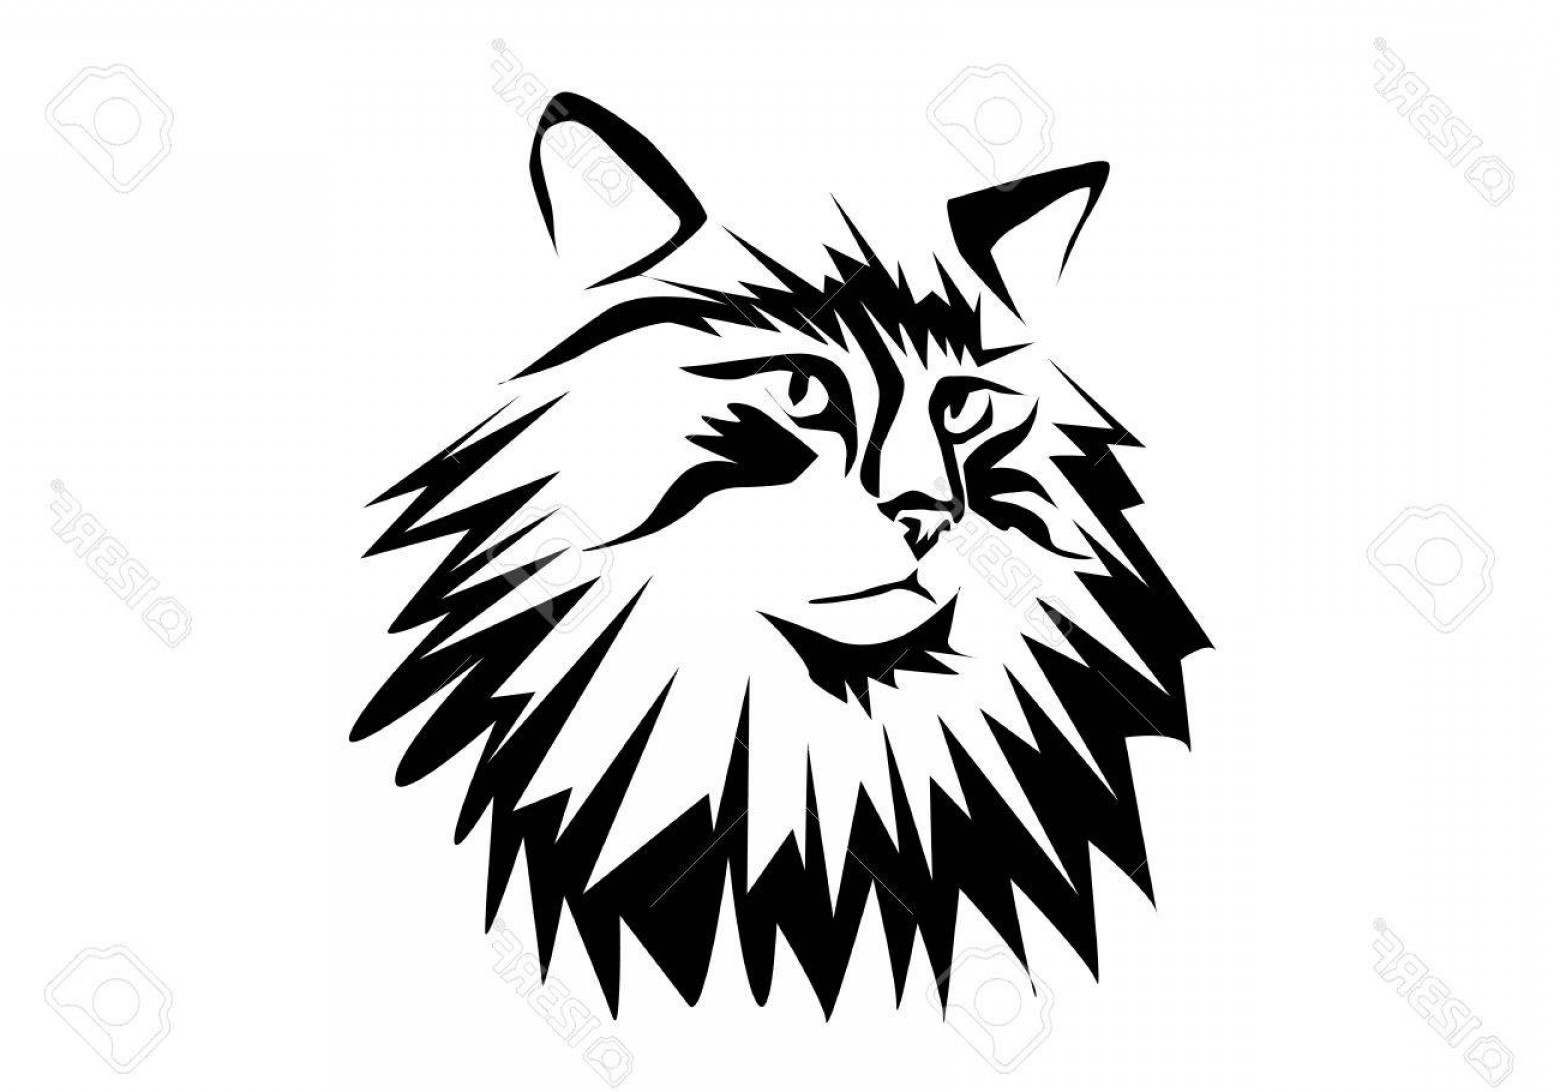 Malee Cat Head Silhouette Vector: Photostock Vector Norwegian Forest Cat Silhouette Isolated On White